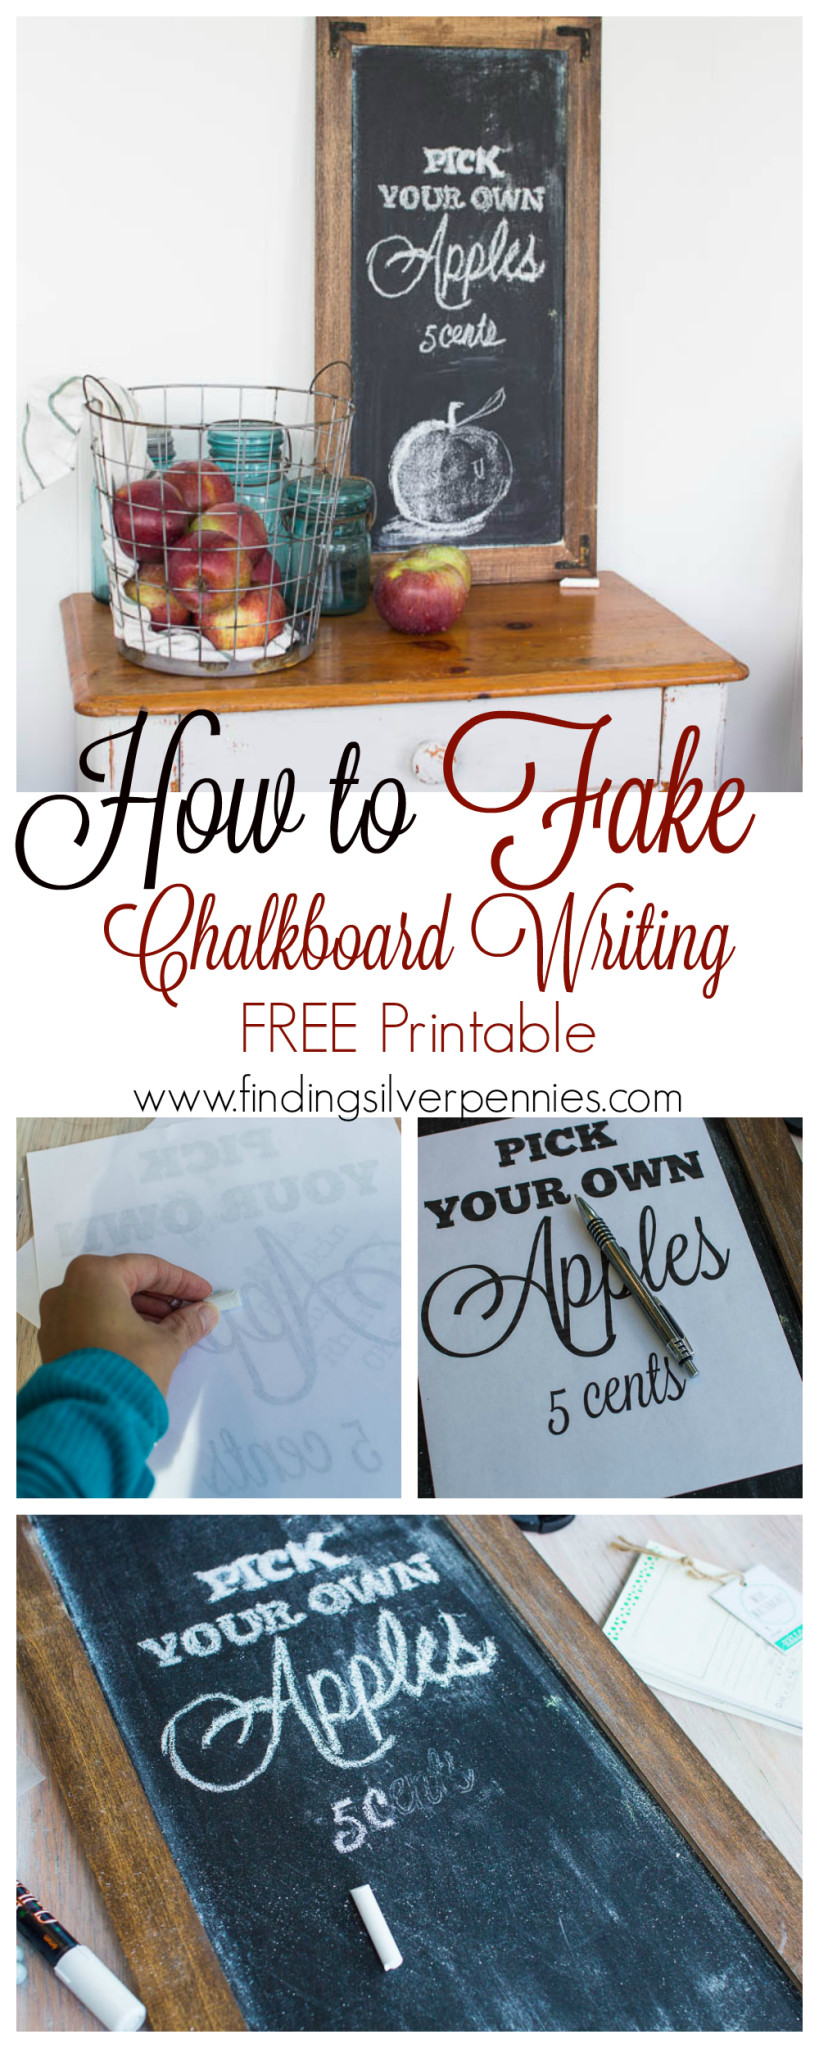 How to Fake Chalkboard Writing with Free Printable